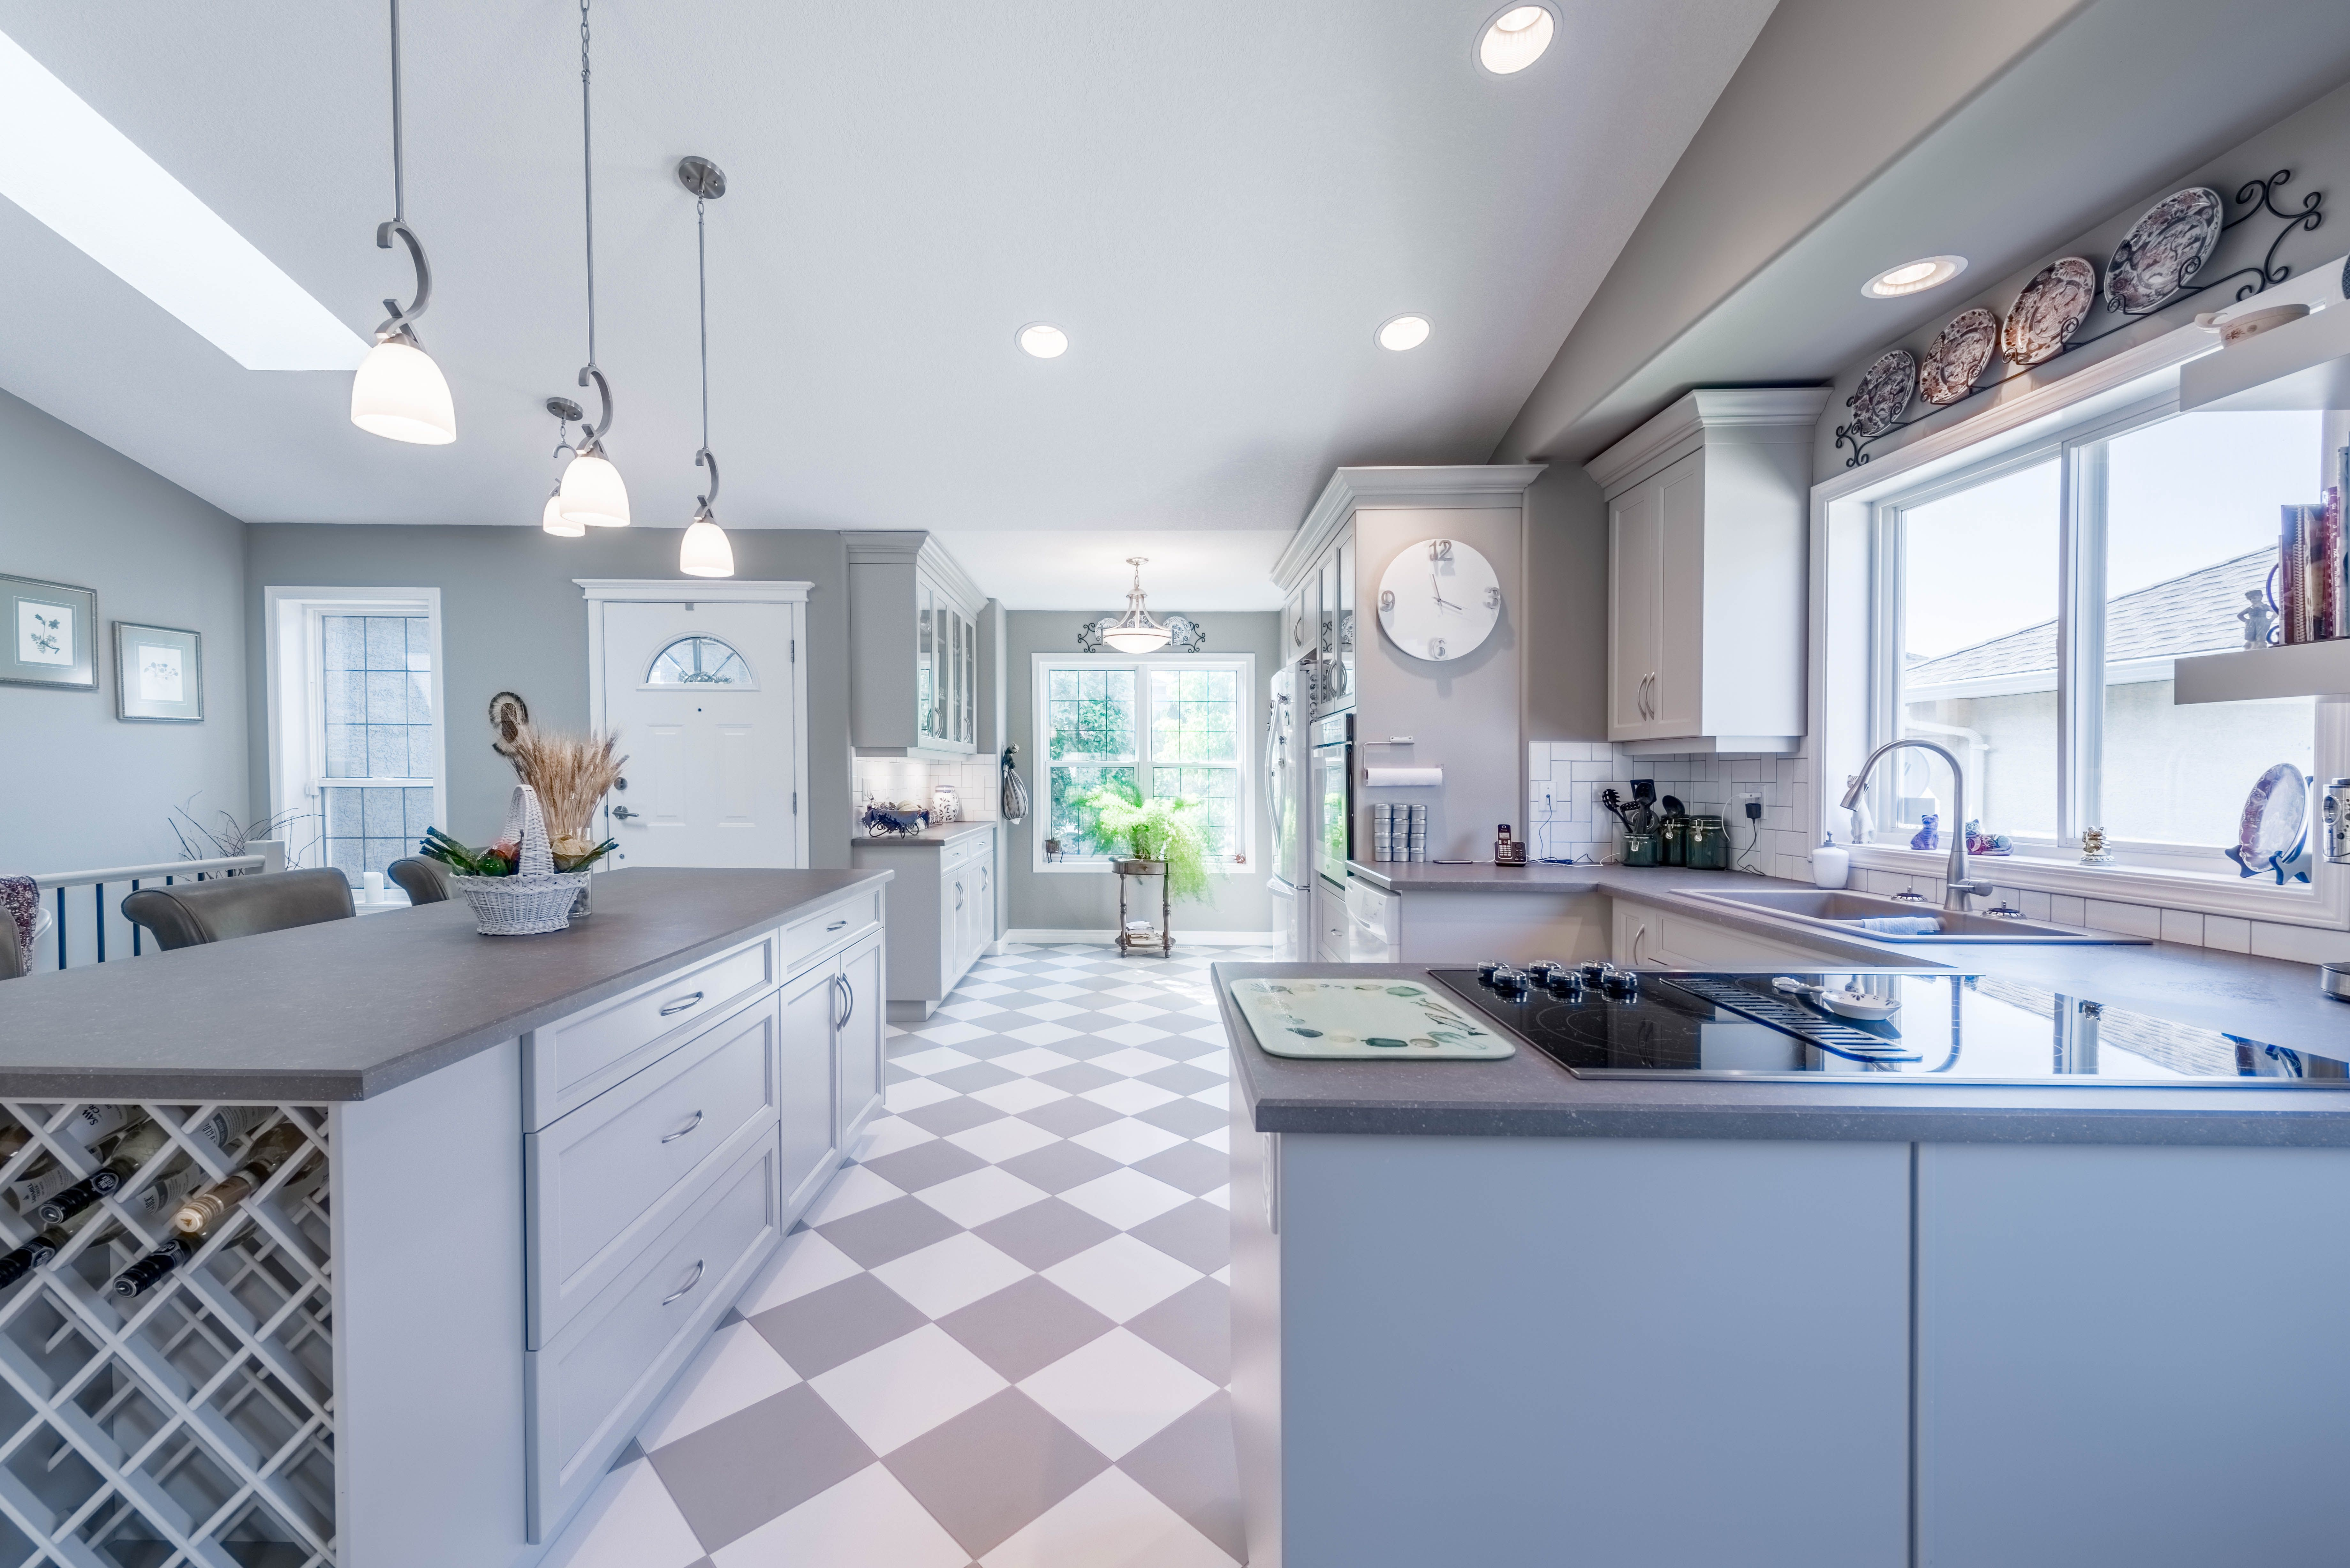 Kitchen Renovation In Vernon Bc Featuring Grey And White